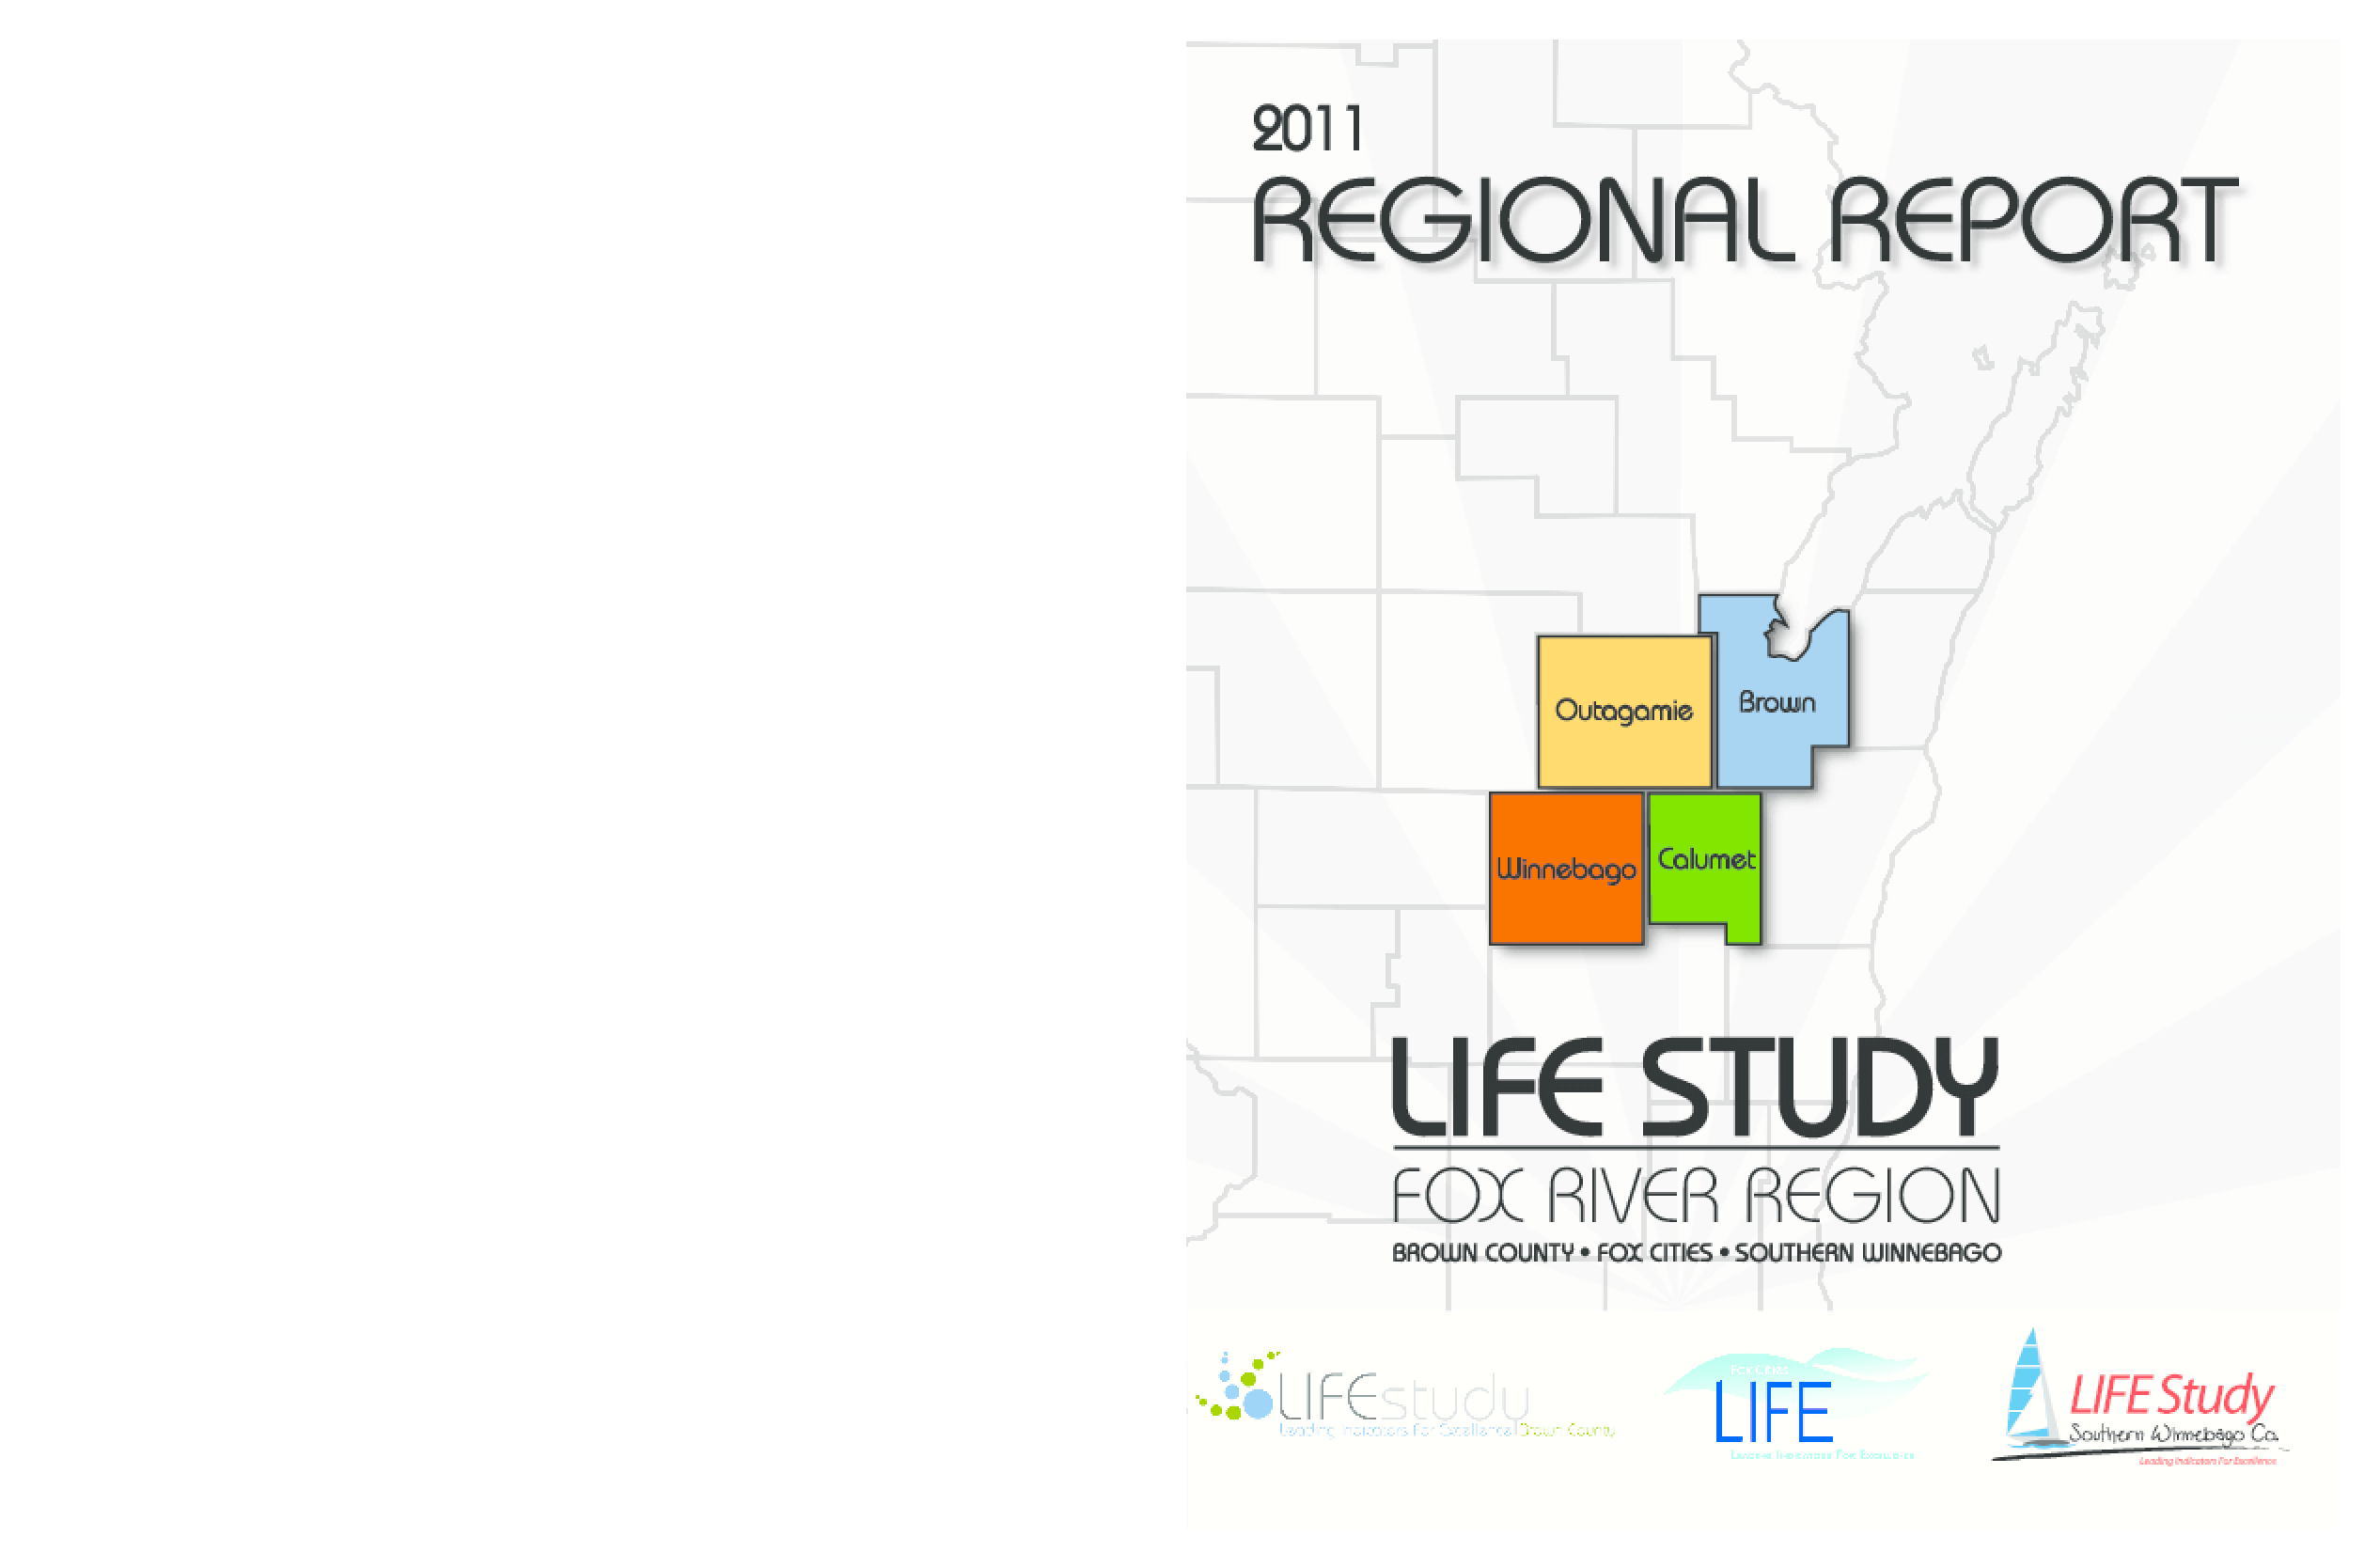 2011 LIFE (Leading Indicators For Excellence) Study Regional Report